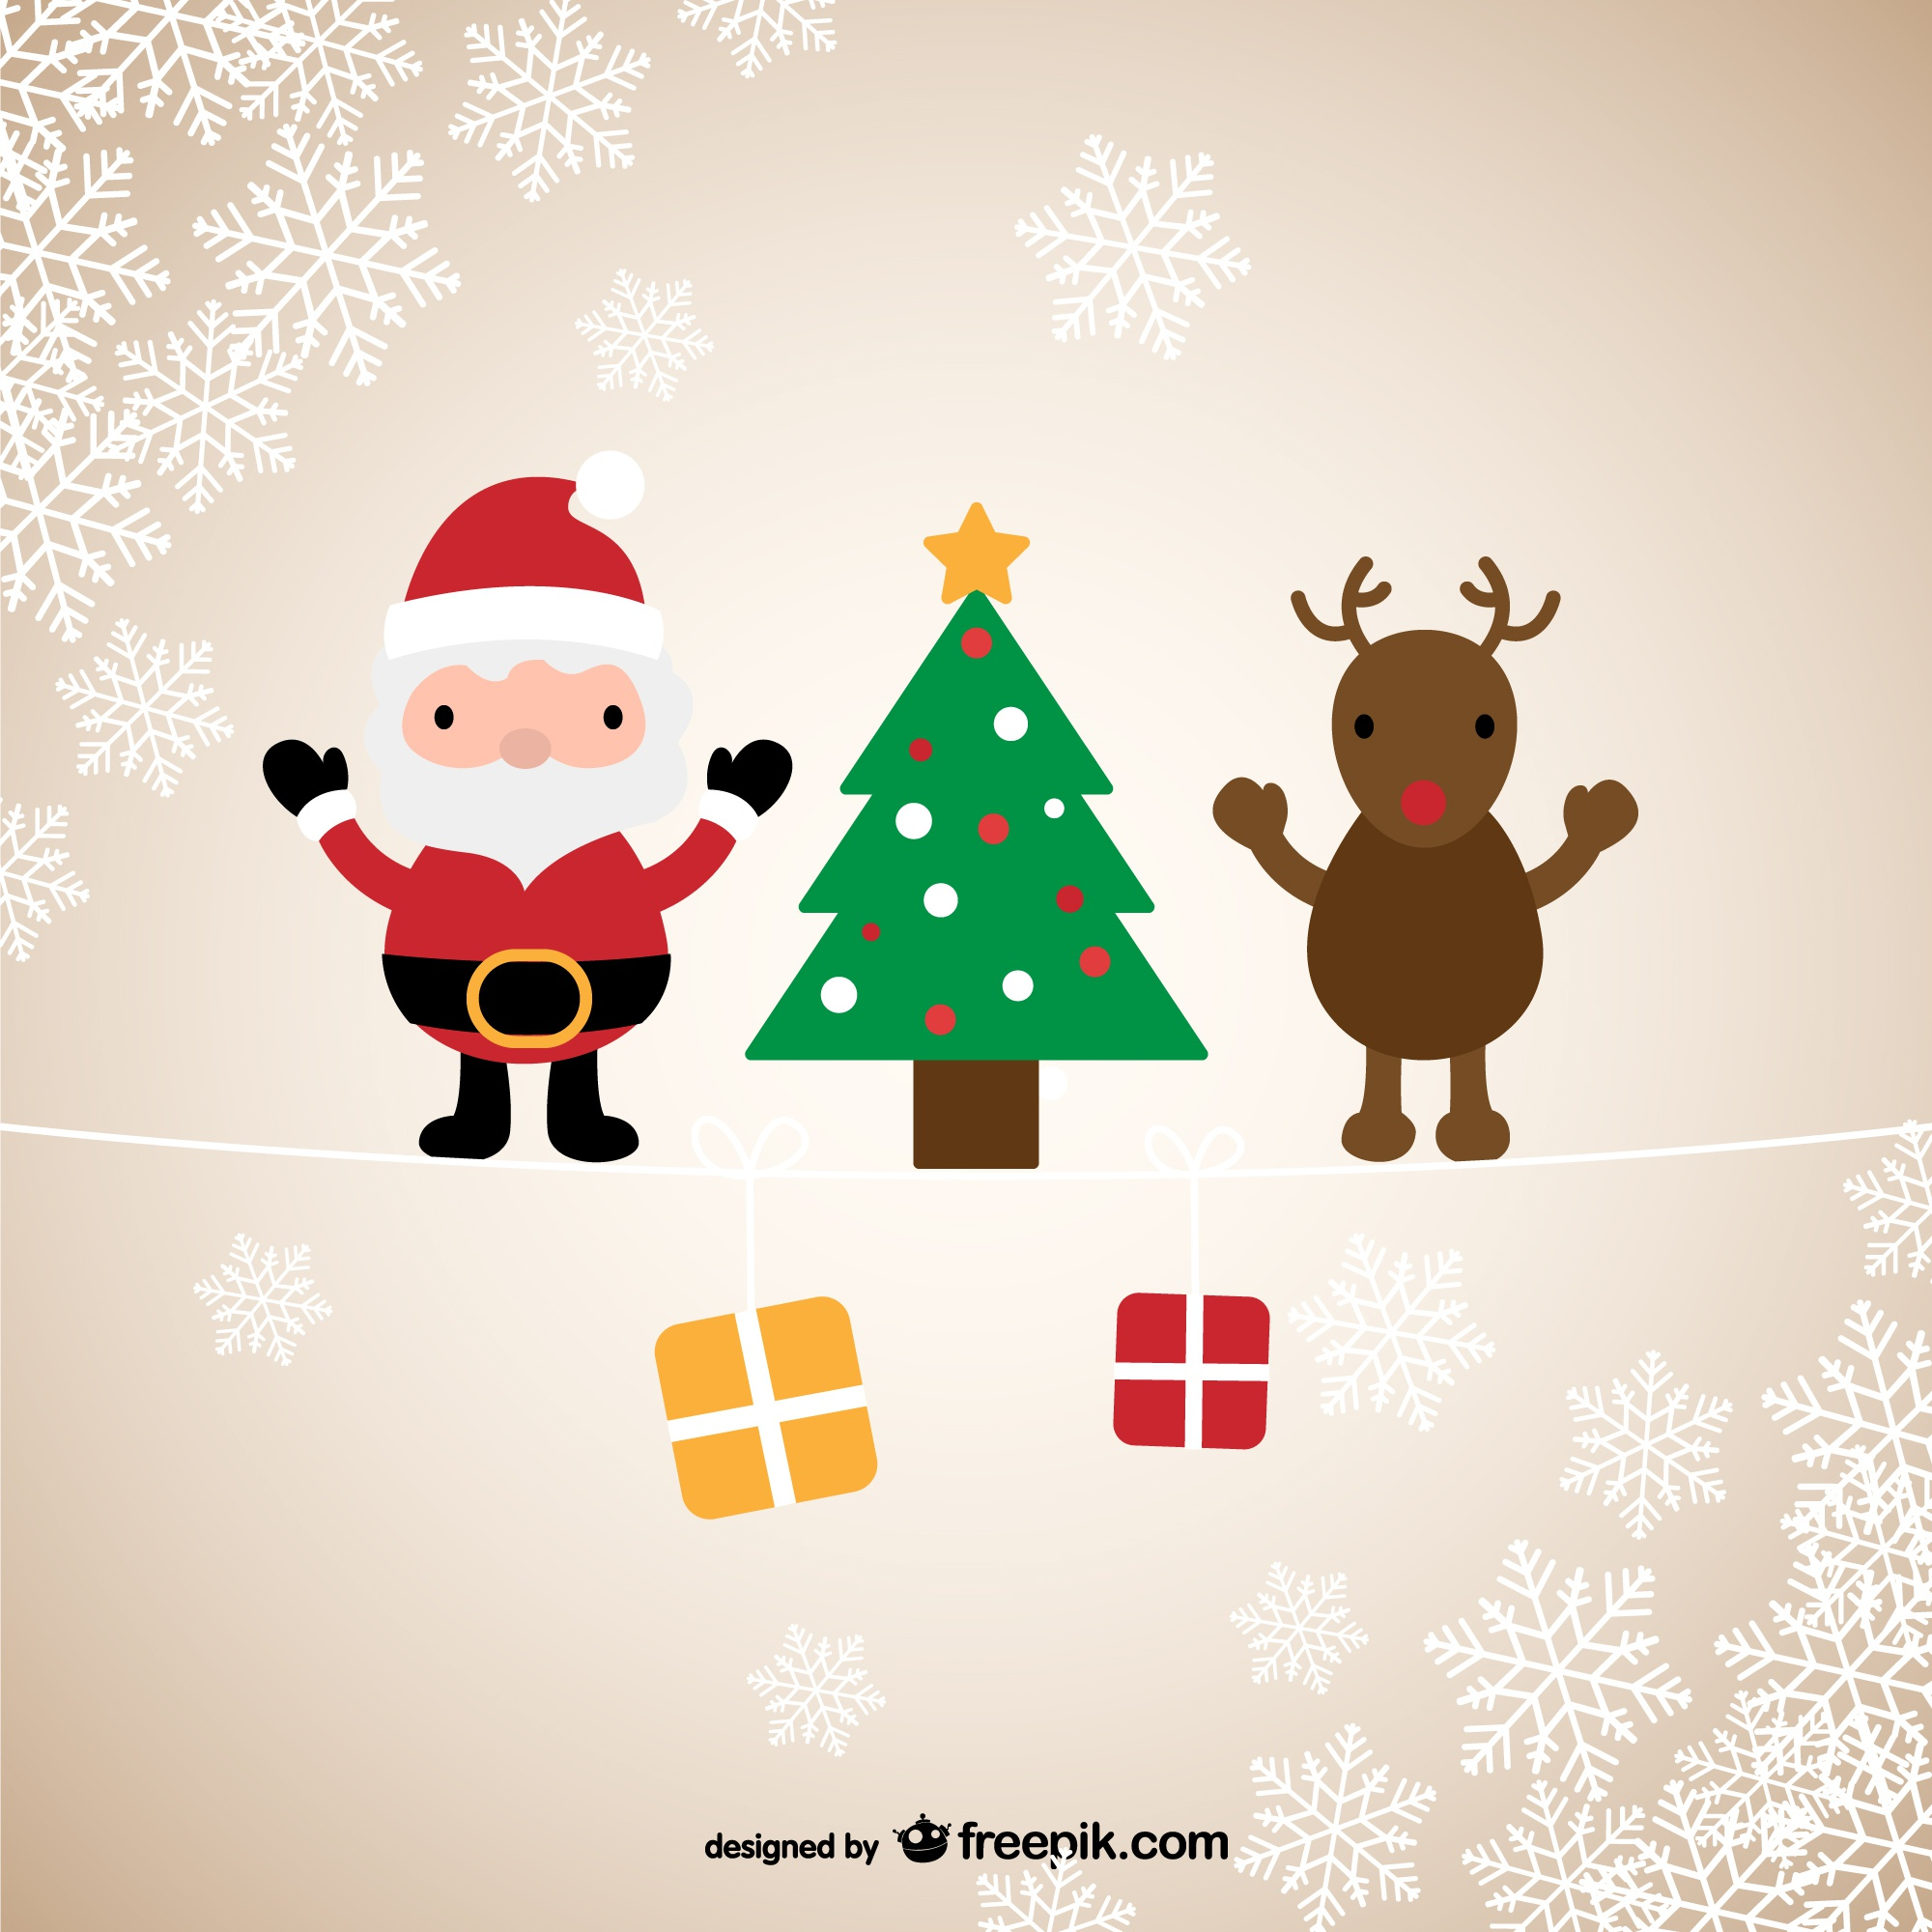 Santa & Reindeer Christmas greeting